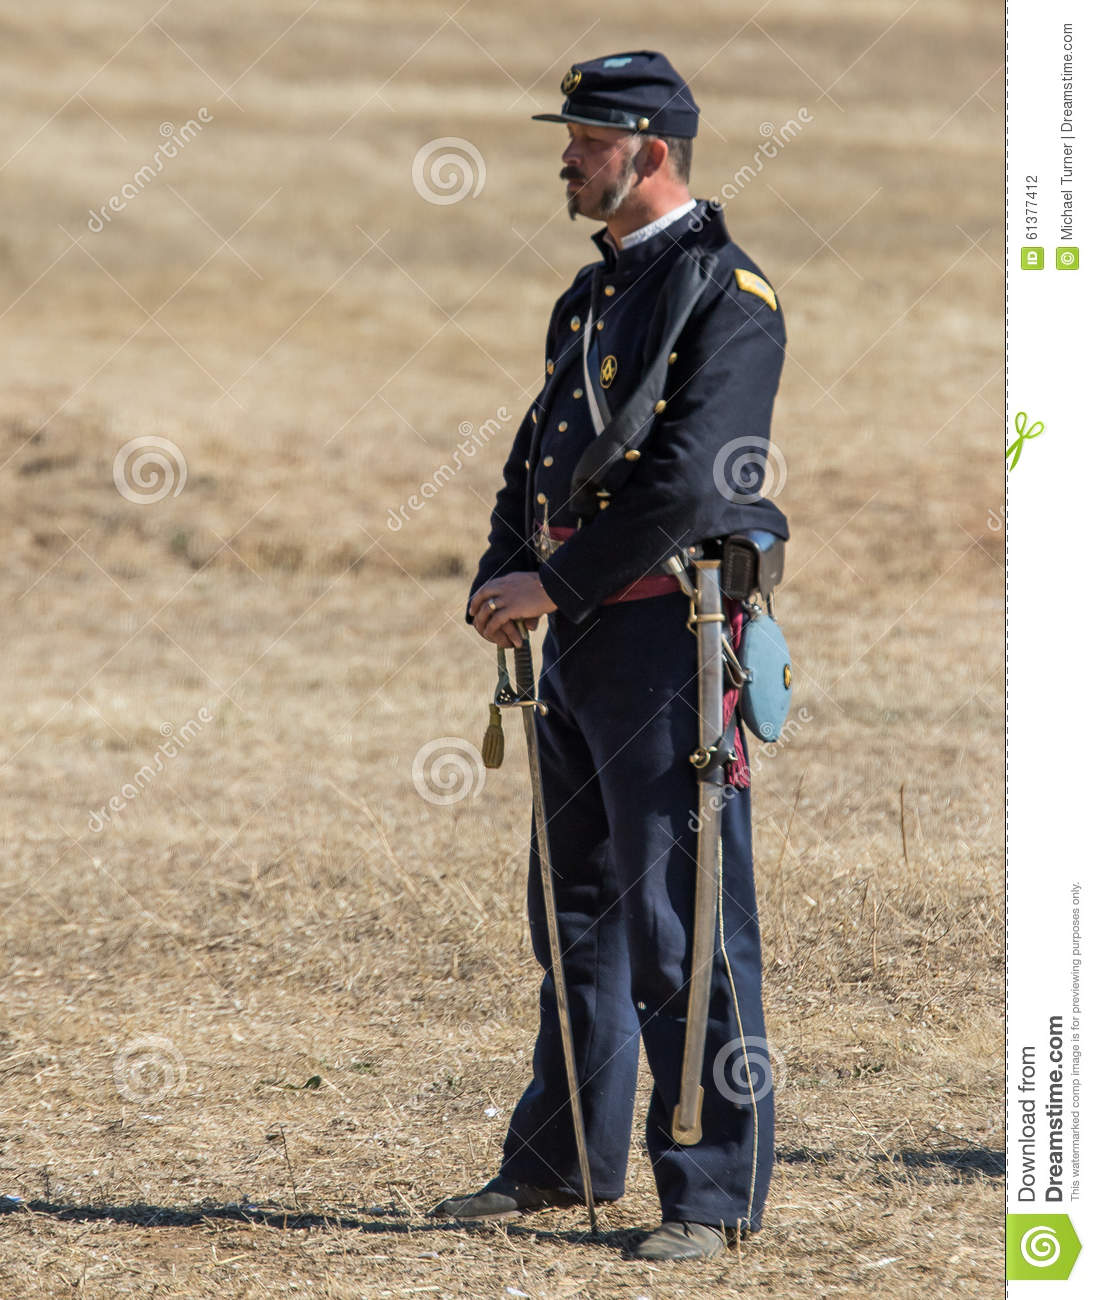 Civil war reenactor uniform, gay bear hunks photos